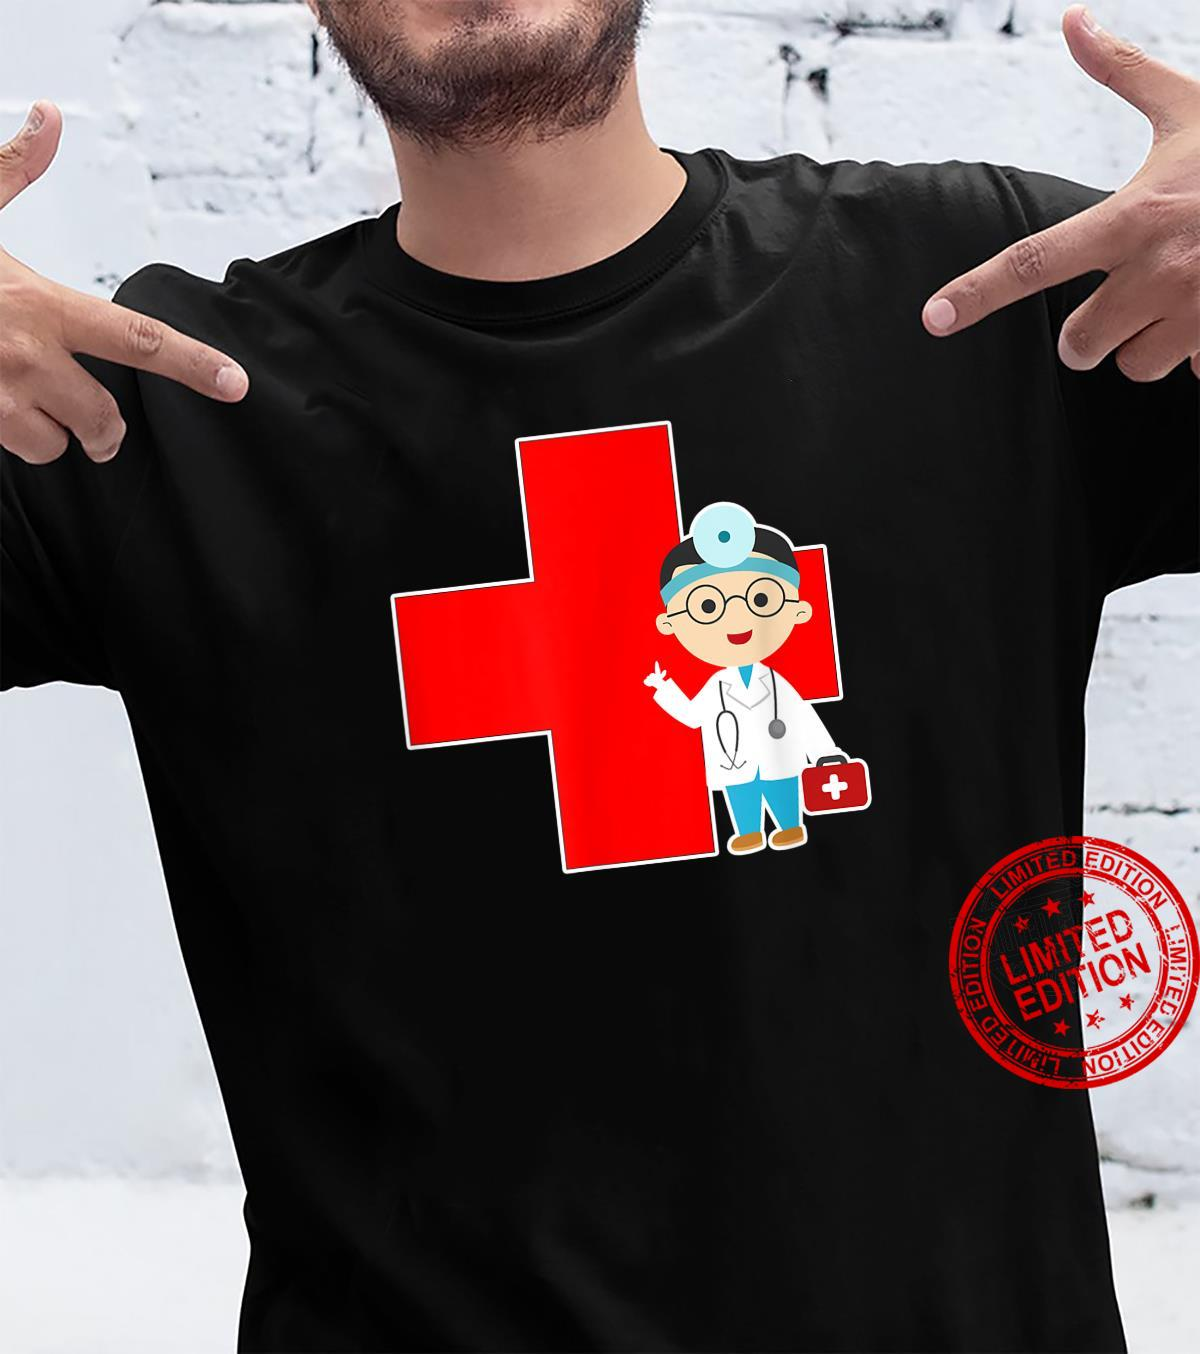 Cross Doctor Design for People Working in Hospital Shirt